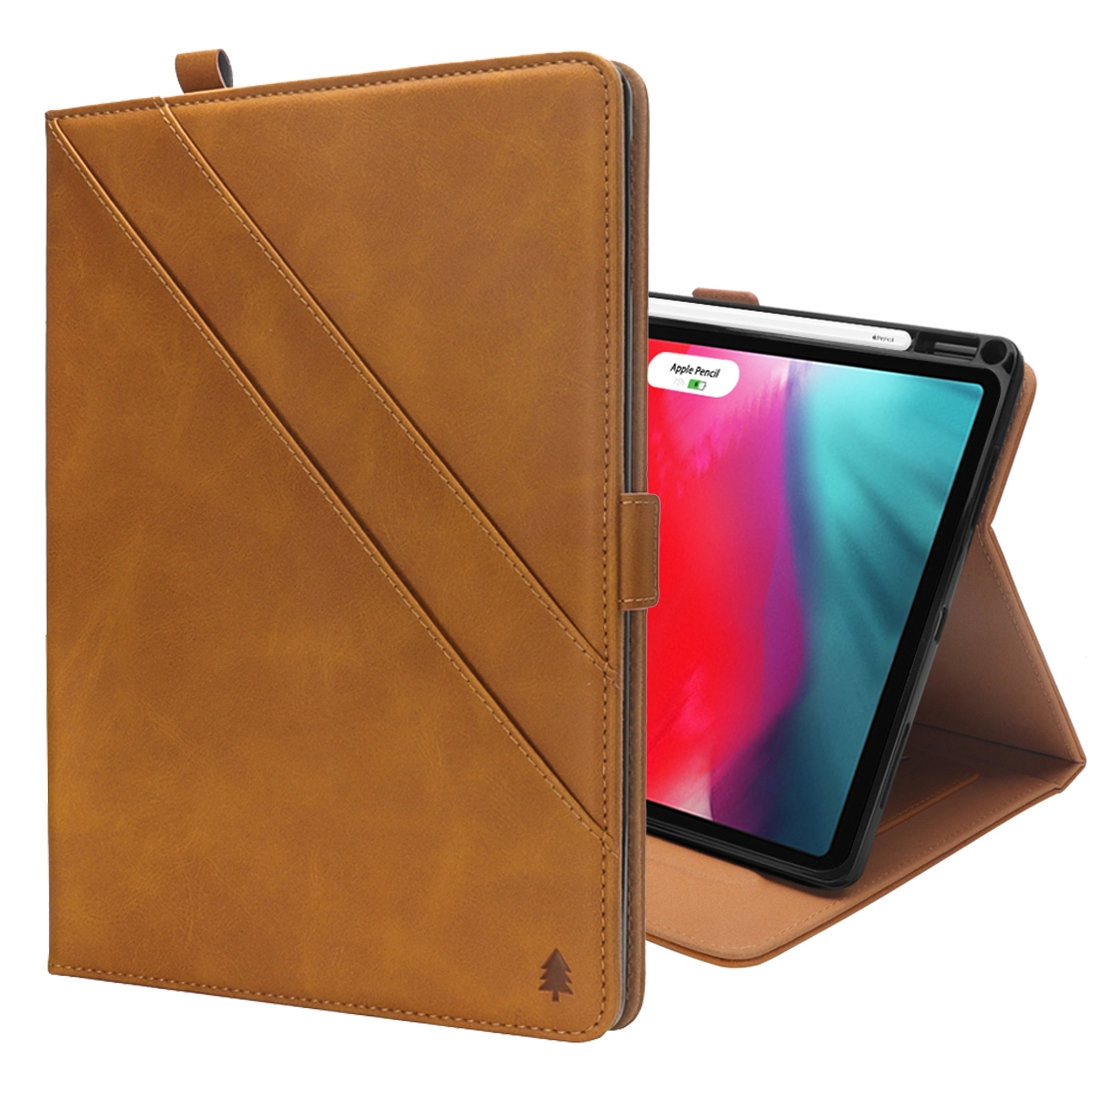 Bi-Stand Leather iPad Pro 11 Case (2018), w/Sleeves, Frame, Pen Holder (Light Brown)